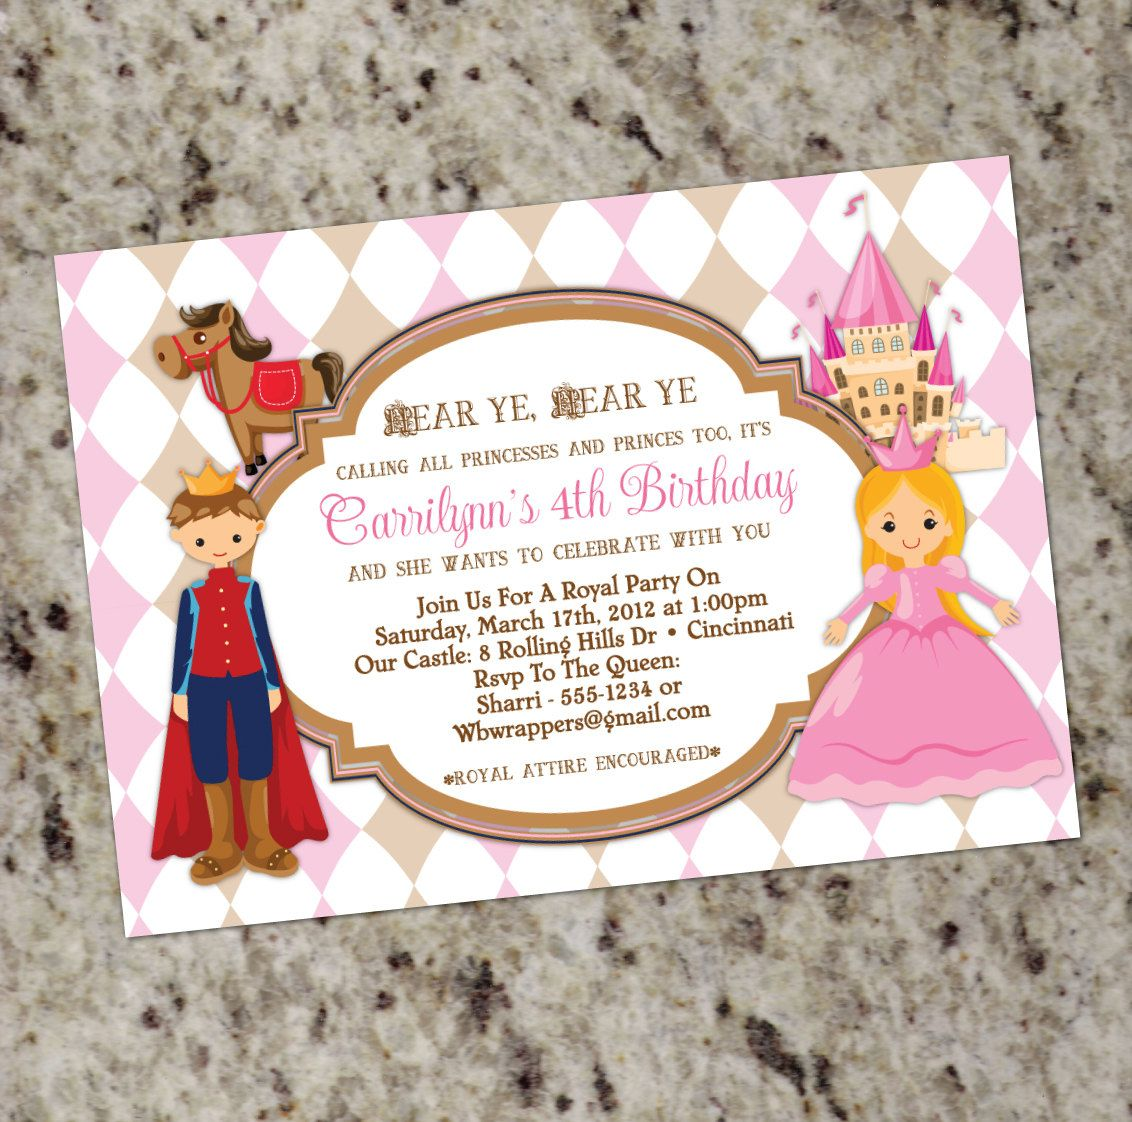 Princess and Prince - Birthday Party Invitations - Calling All ...